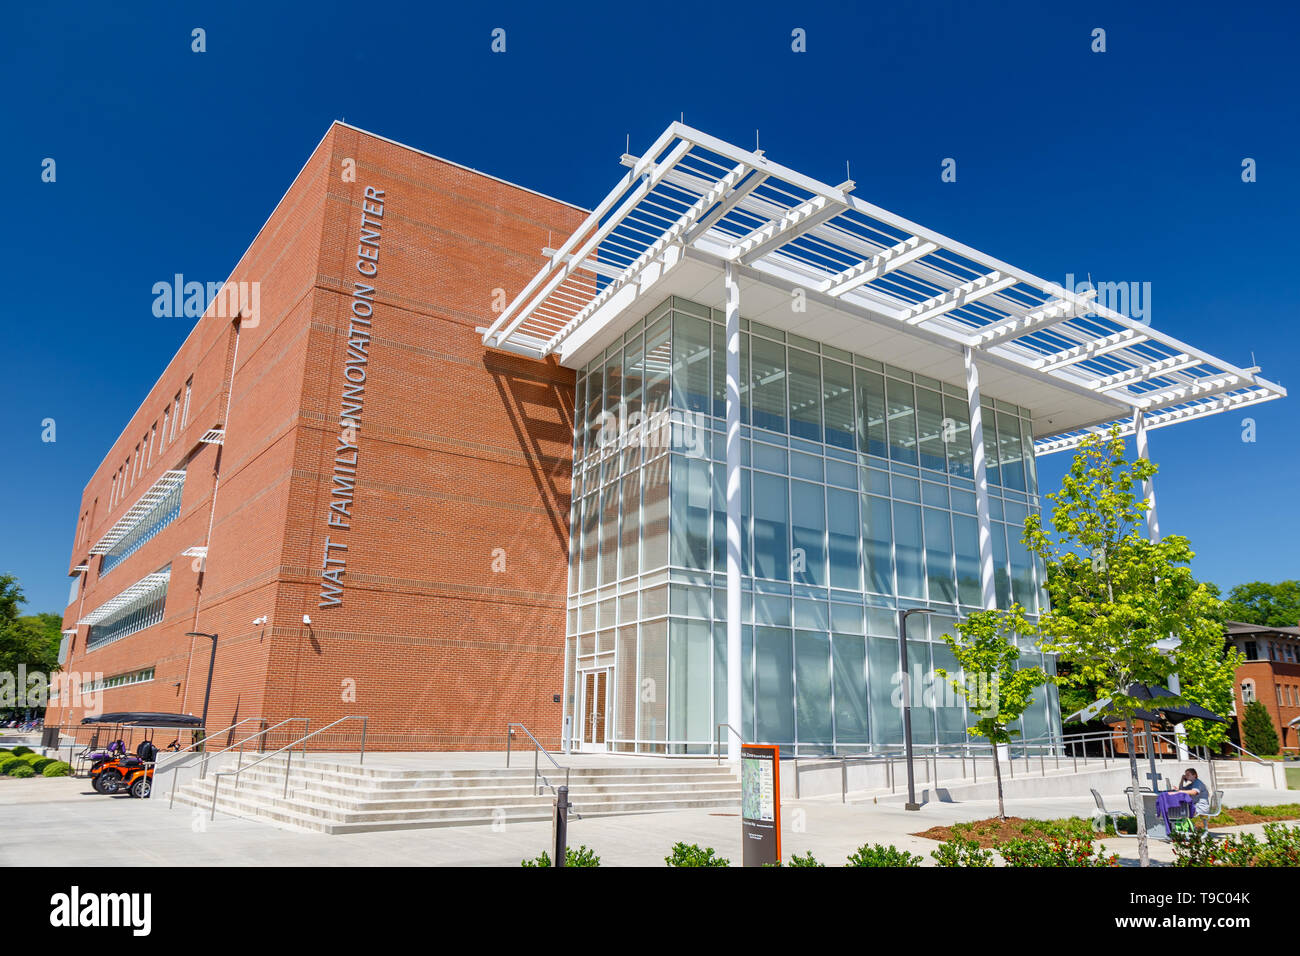 CLEMSON, SC, USA - May 2: Wyatt Family Innovation Center at Clemson University on May 2, 2019 in Clemson, South Carolina. - Stock Image